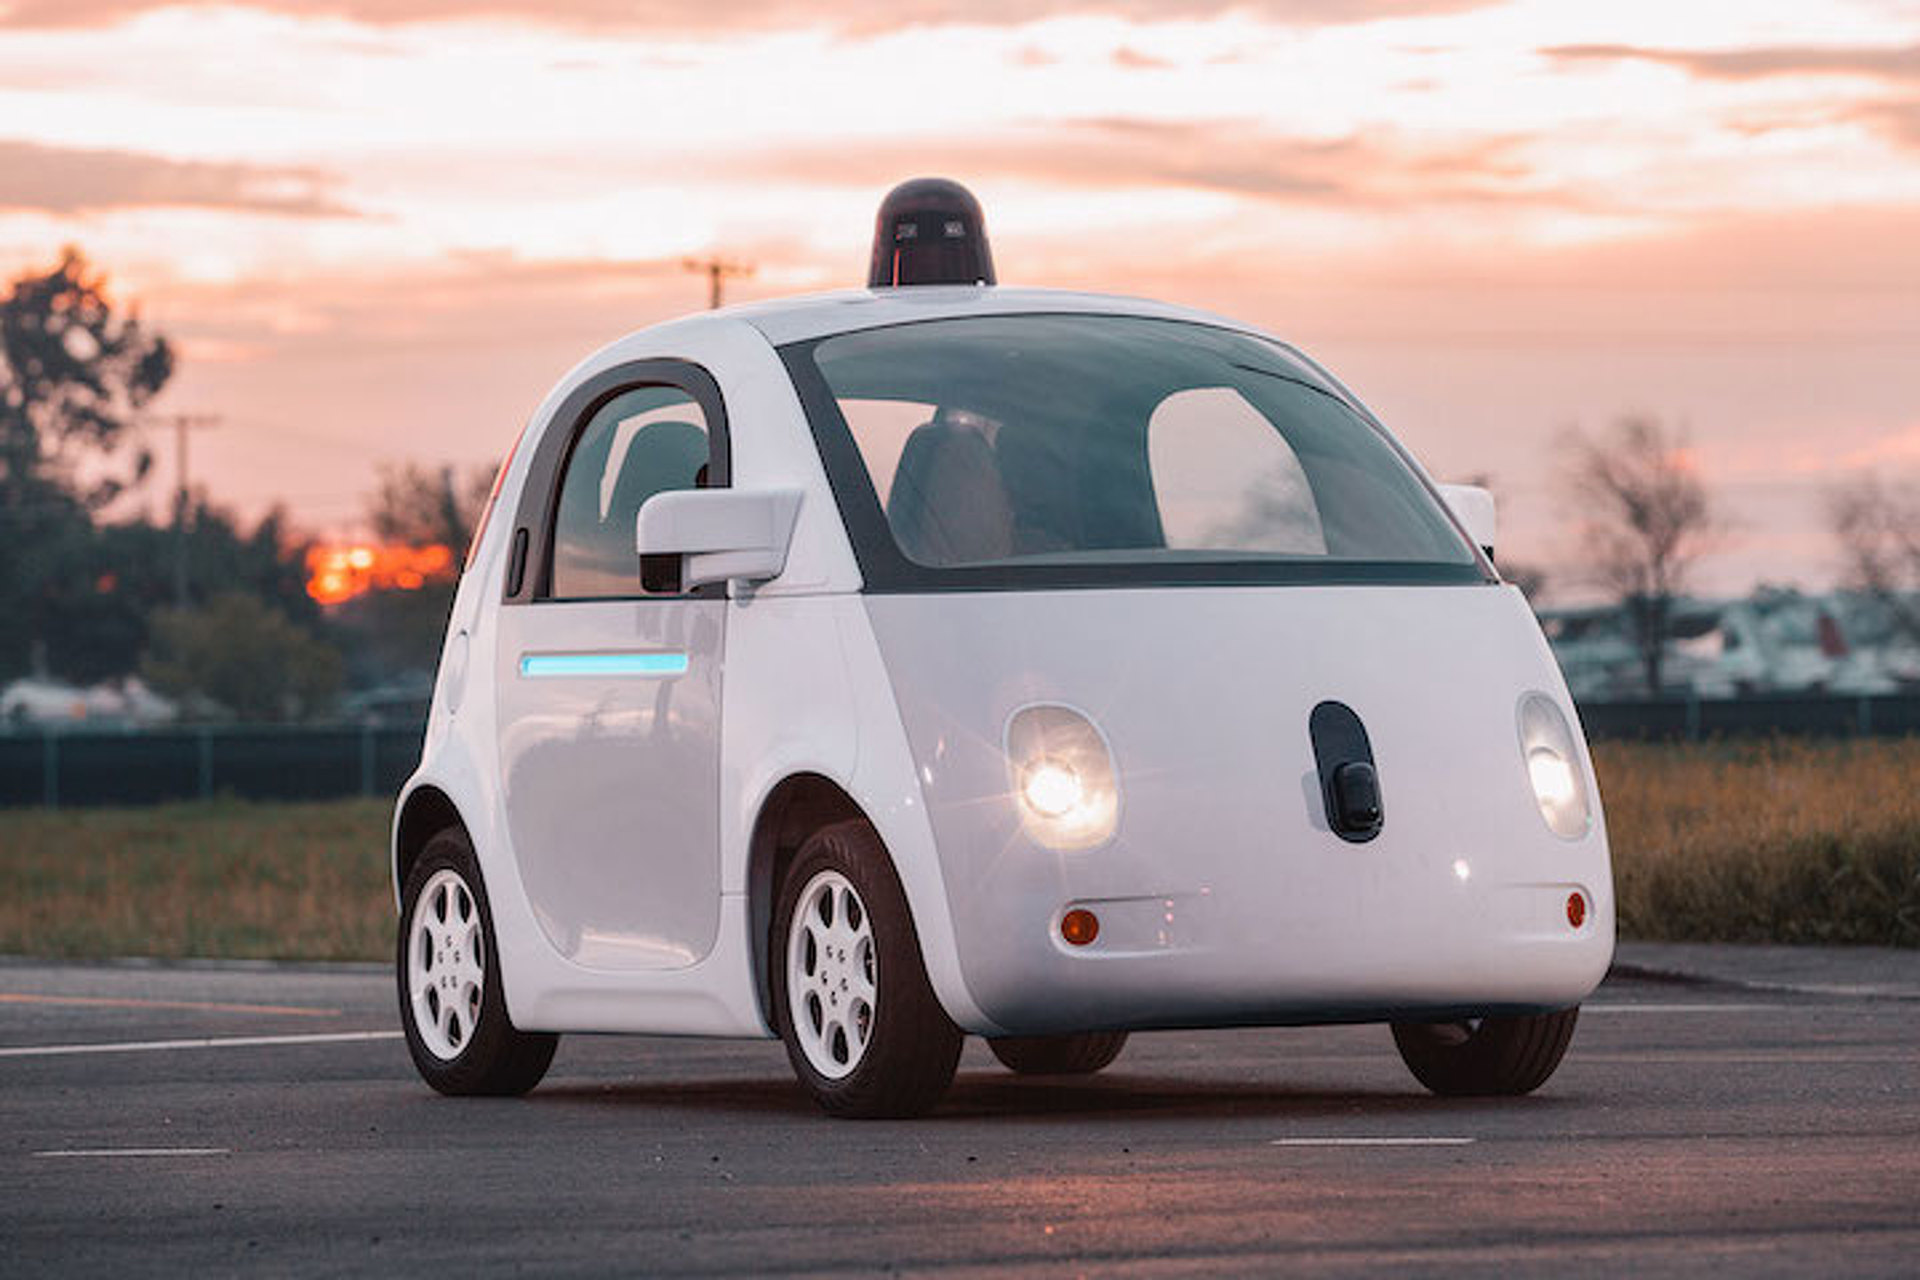 Google's Self-Driving Proving Ground Has Seriously Awesome Street Names